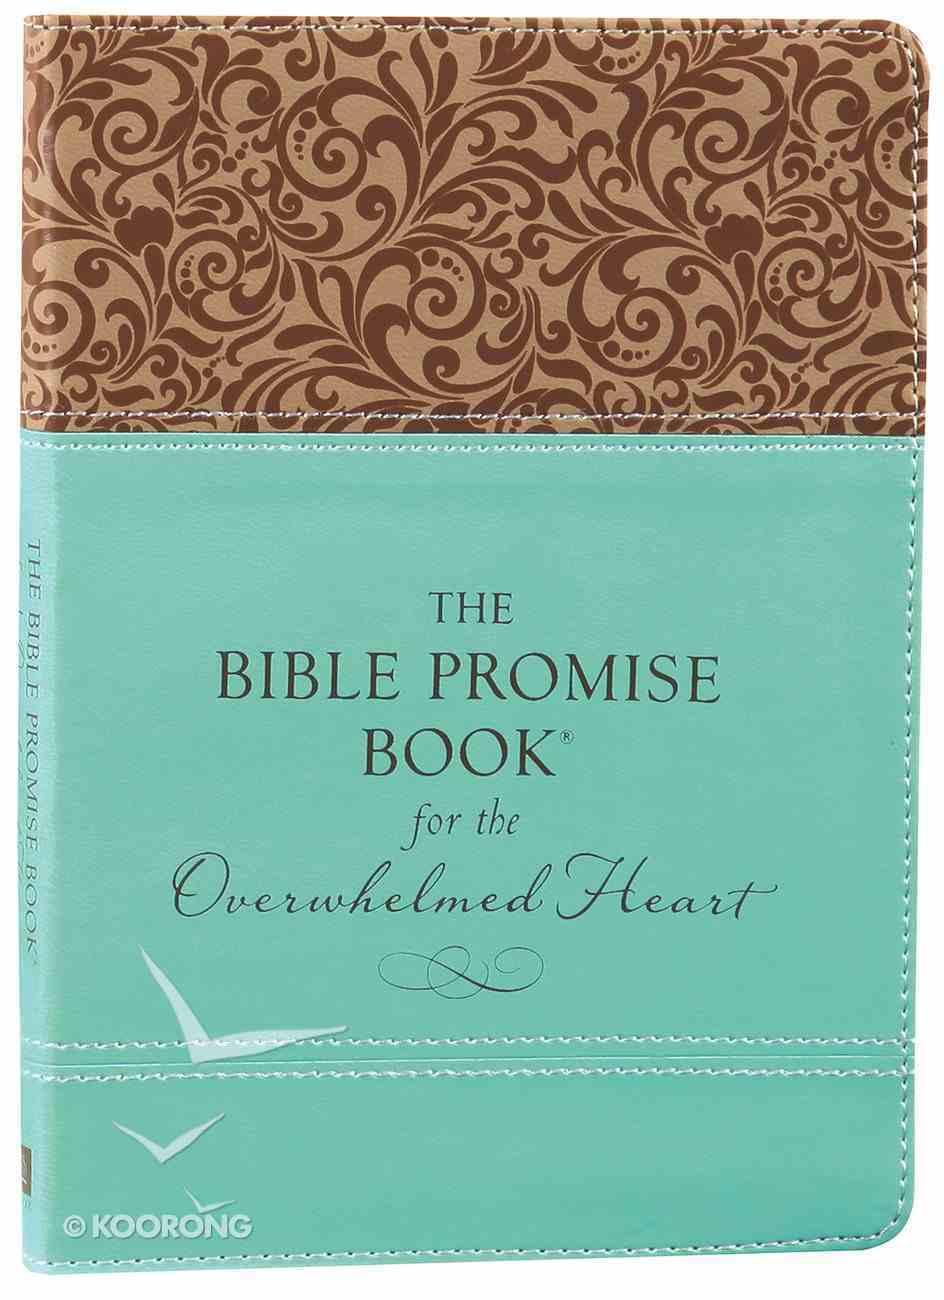 The Bible Promise Book For the Overwhelmed Heart Imitation Leather